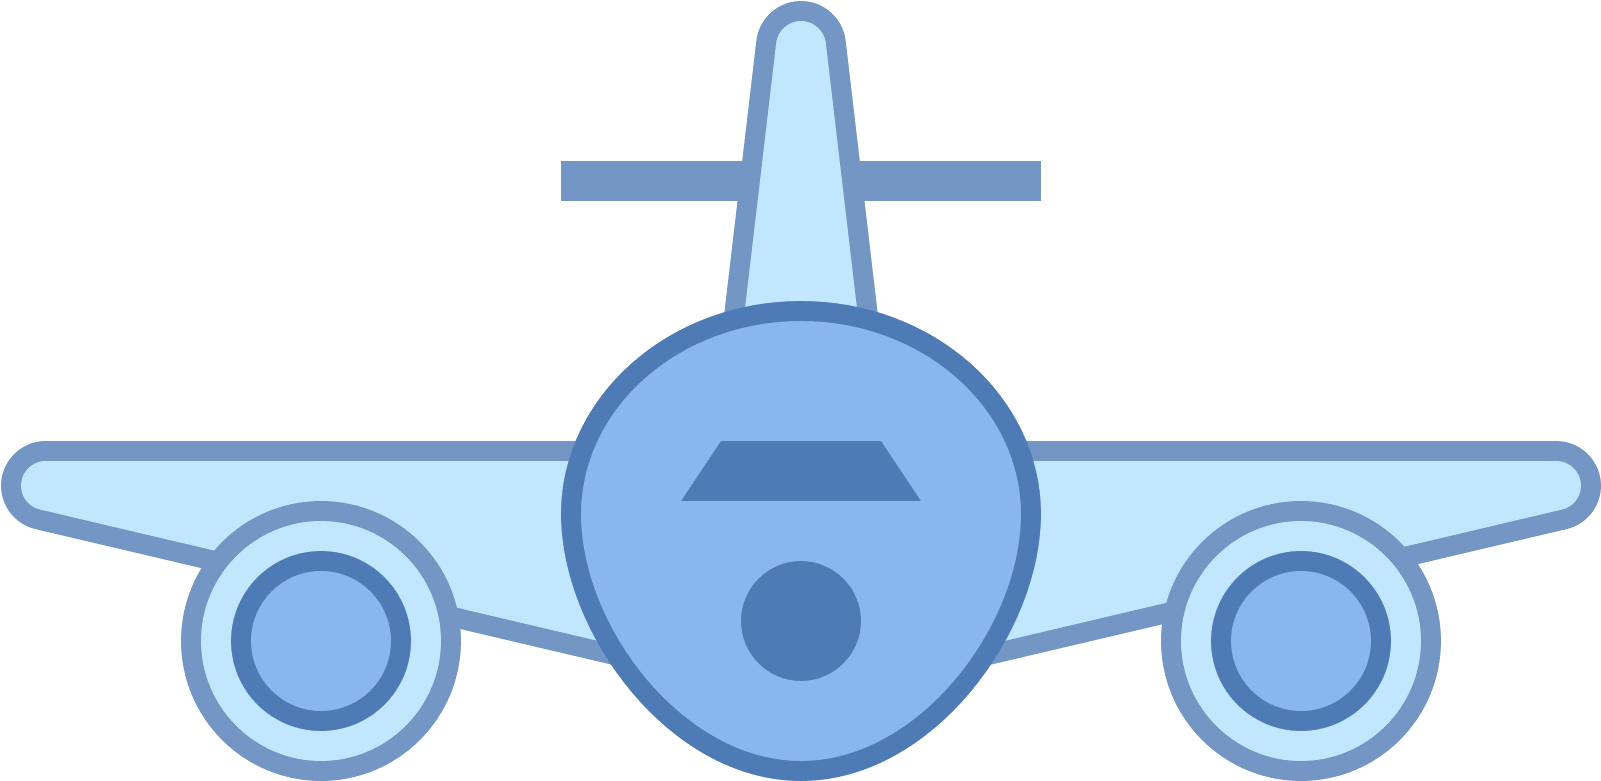 Aircraft Clipart Airplane Tail.